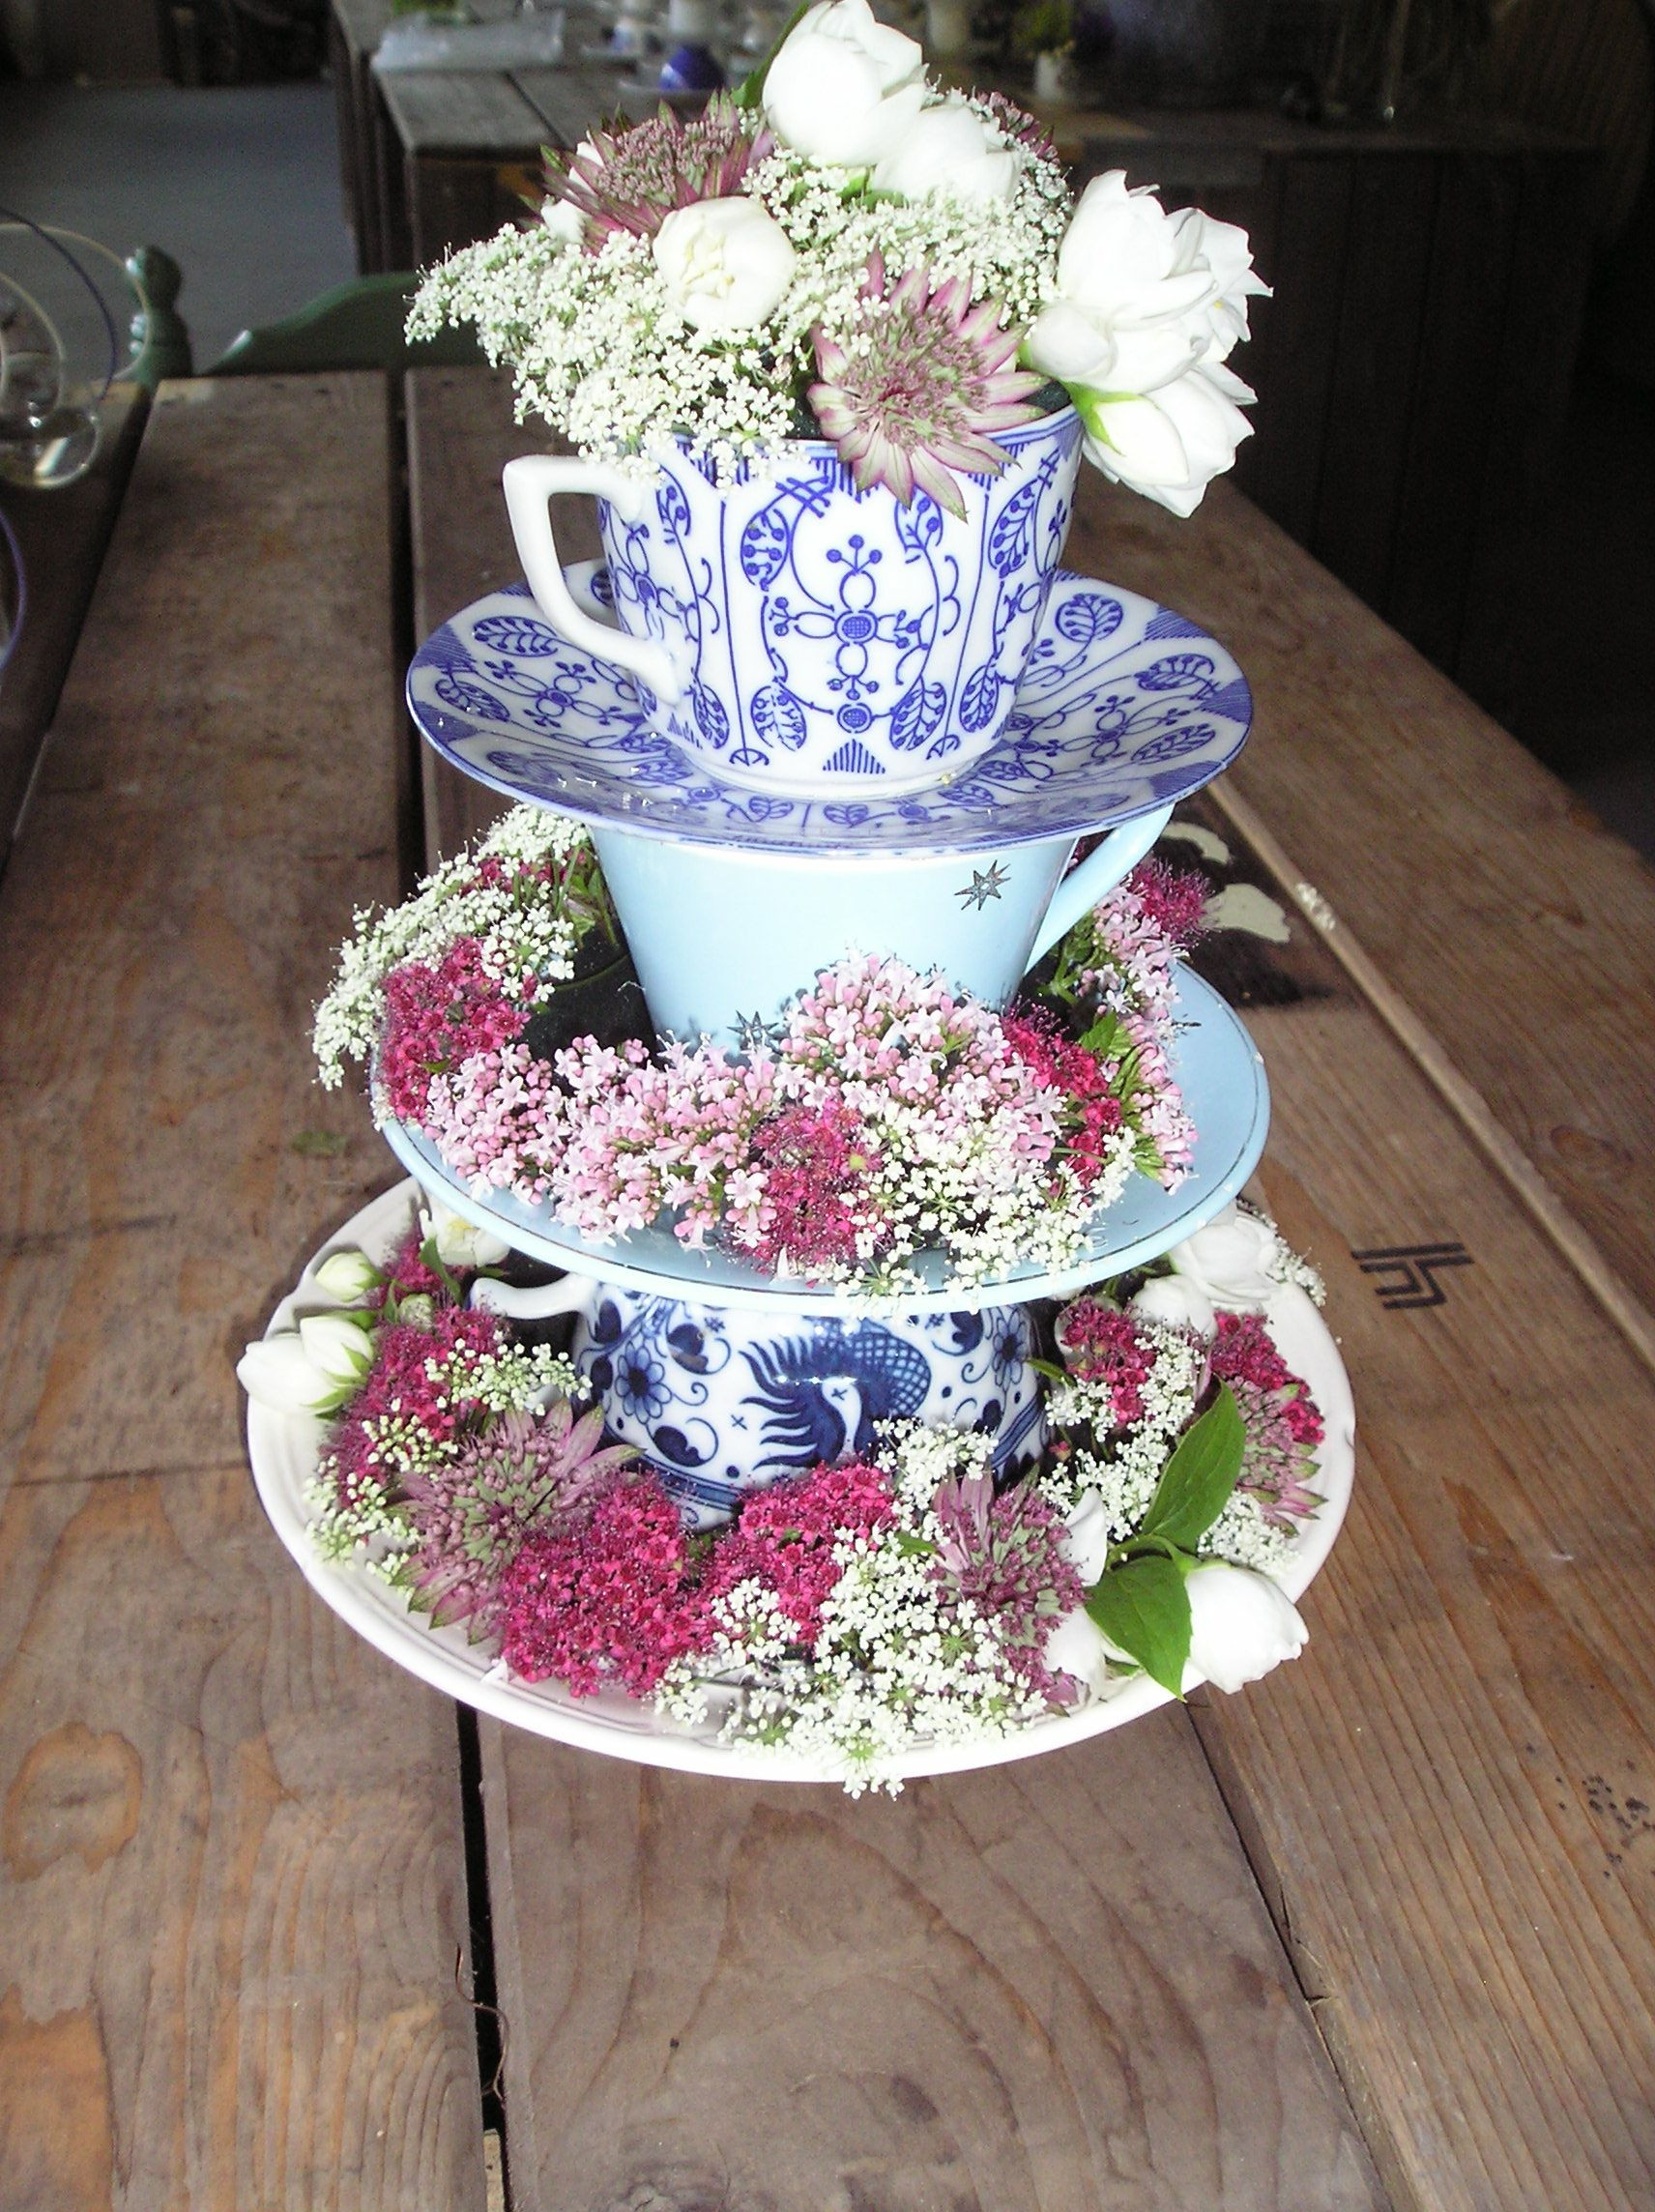 how to make floating flowers in vase of etagere smart upcycled diy pinterest teas craft and shabby in cfa10d3b361fe7159145c71d0b572afe